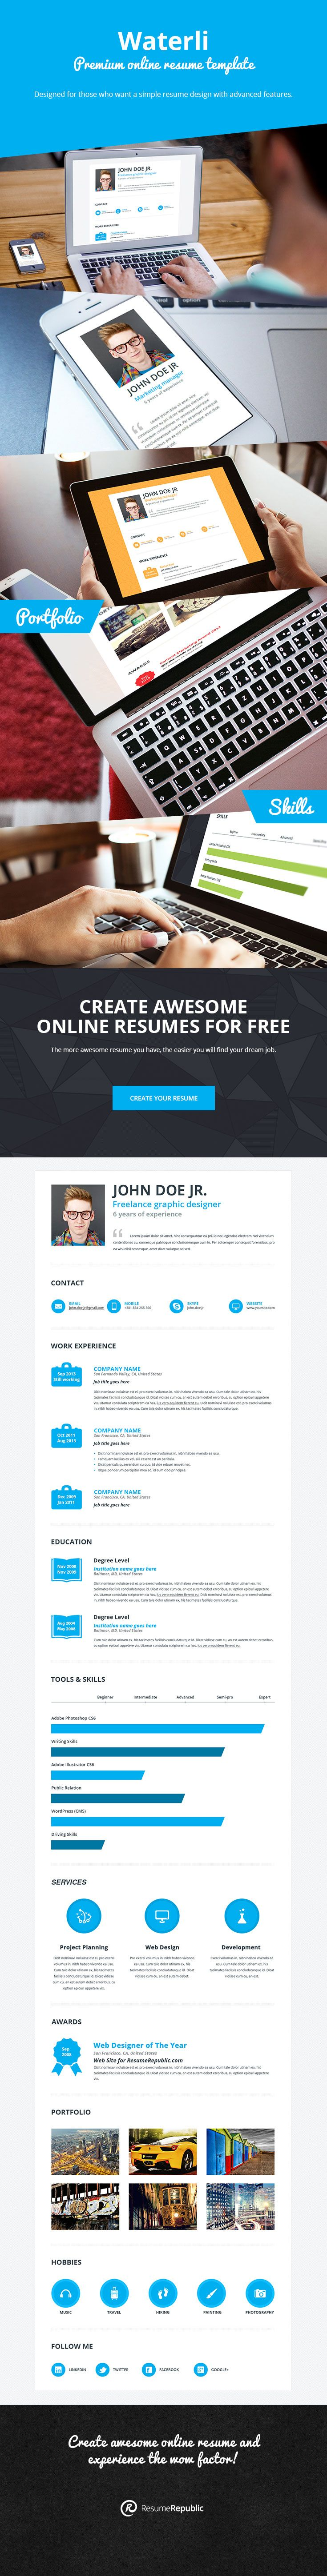 images about premium resume templates online waterli premium online resume template